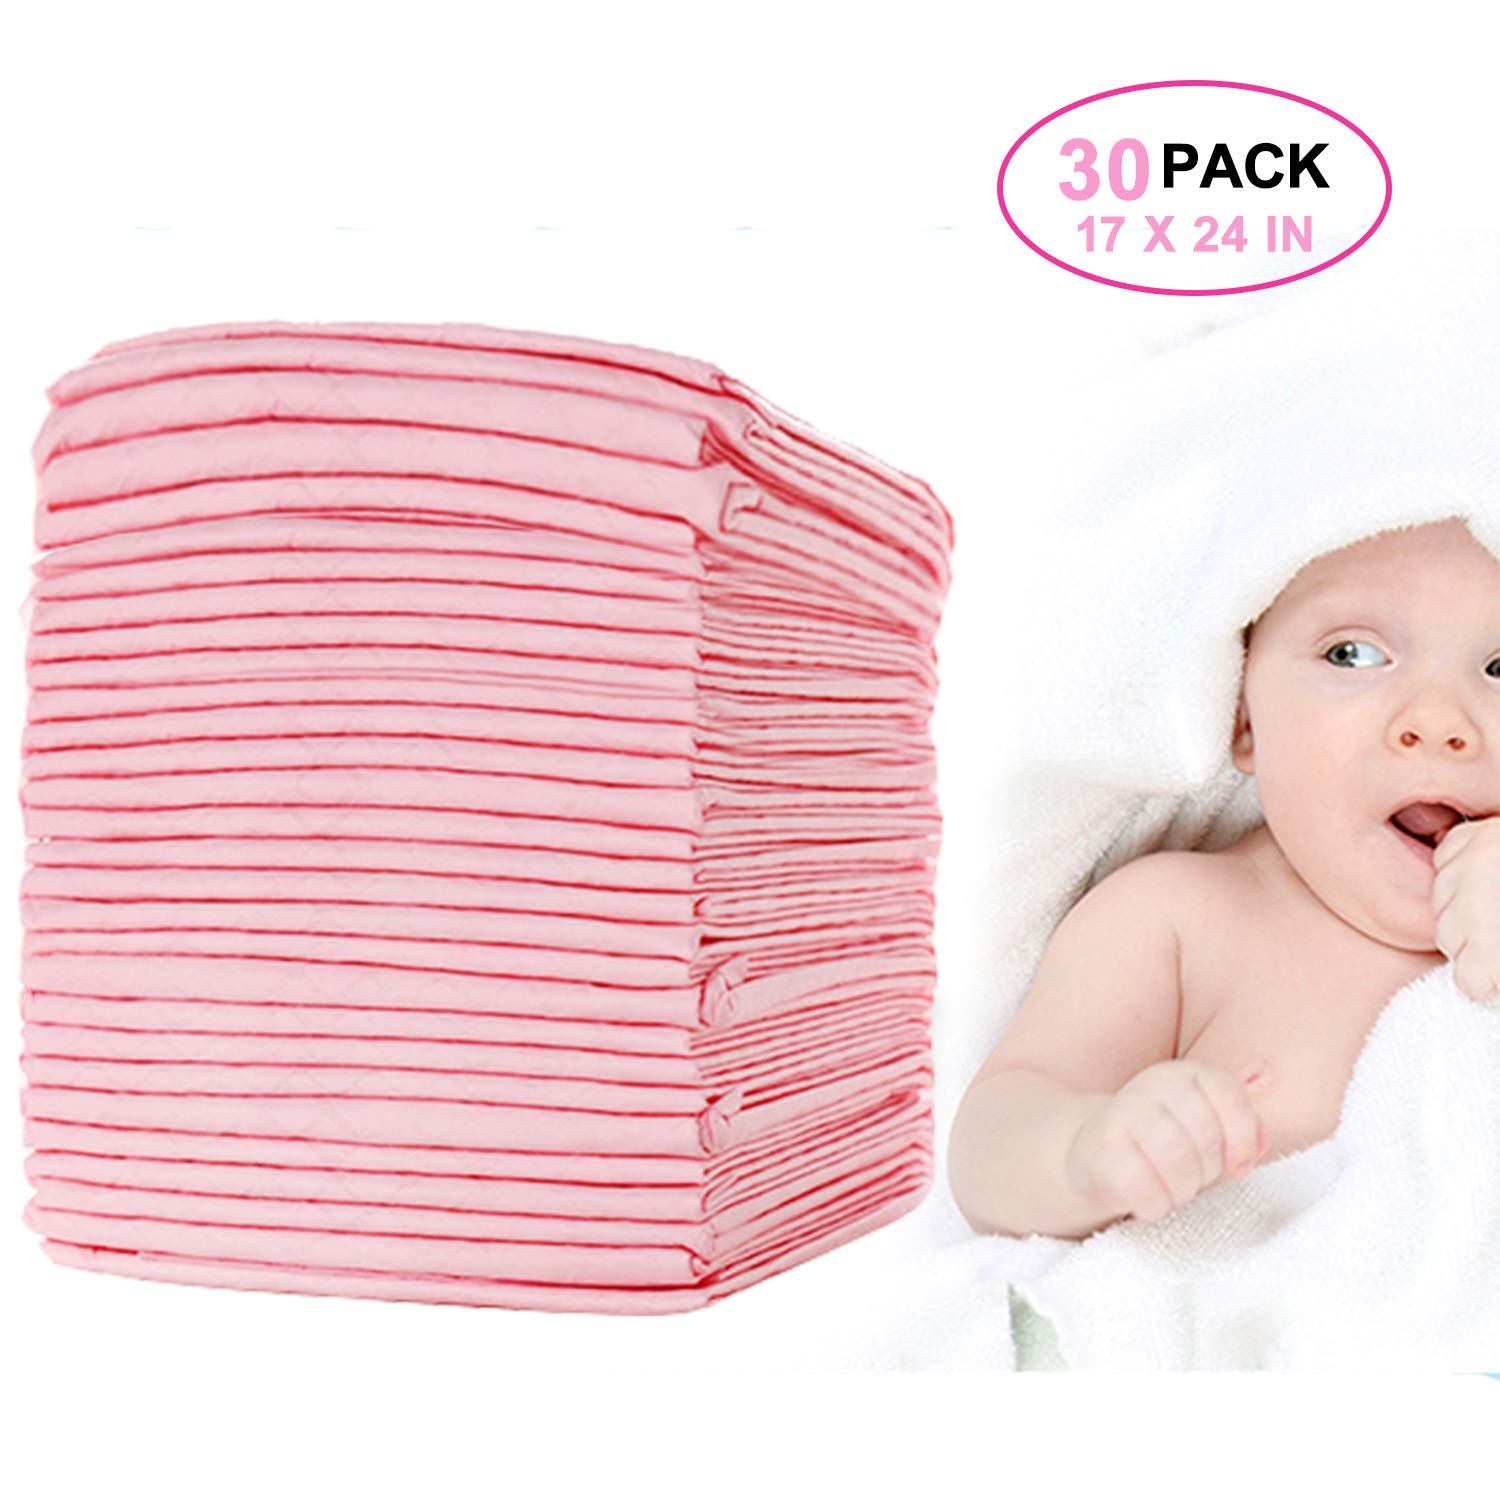 Baby Disposable Changing Pad Incontinence Pads, 30 Pack, 24×18in, Pet Training and Puppy Pads Portable Diaper Changing Table & Mat,Breathable Waterproof Absorbent Changing Pad Cover by OBloved